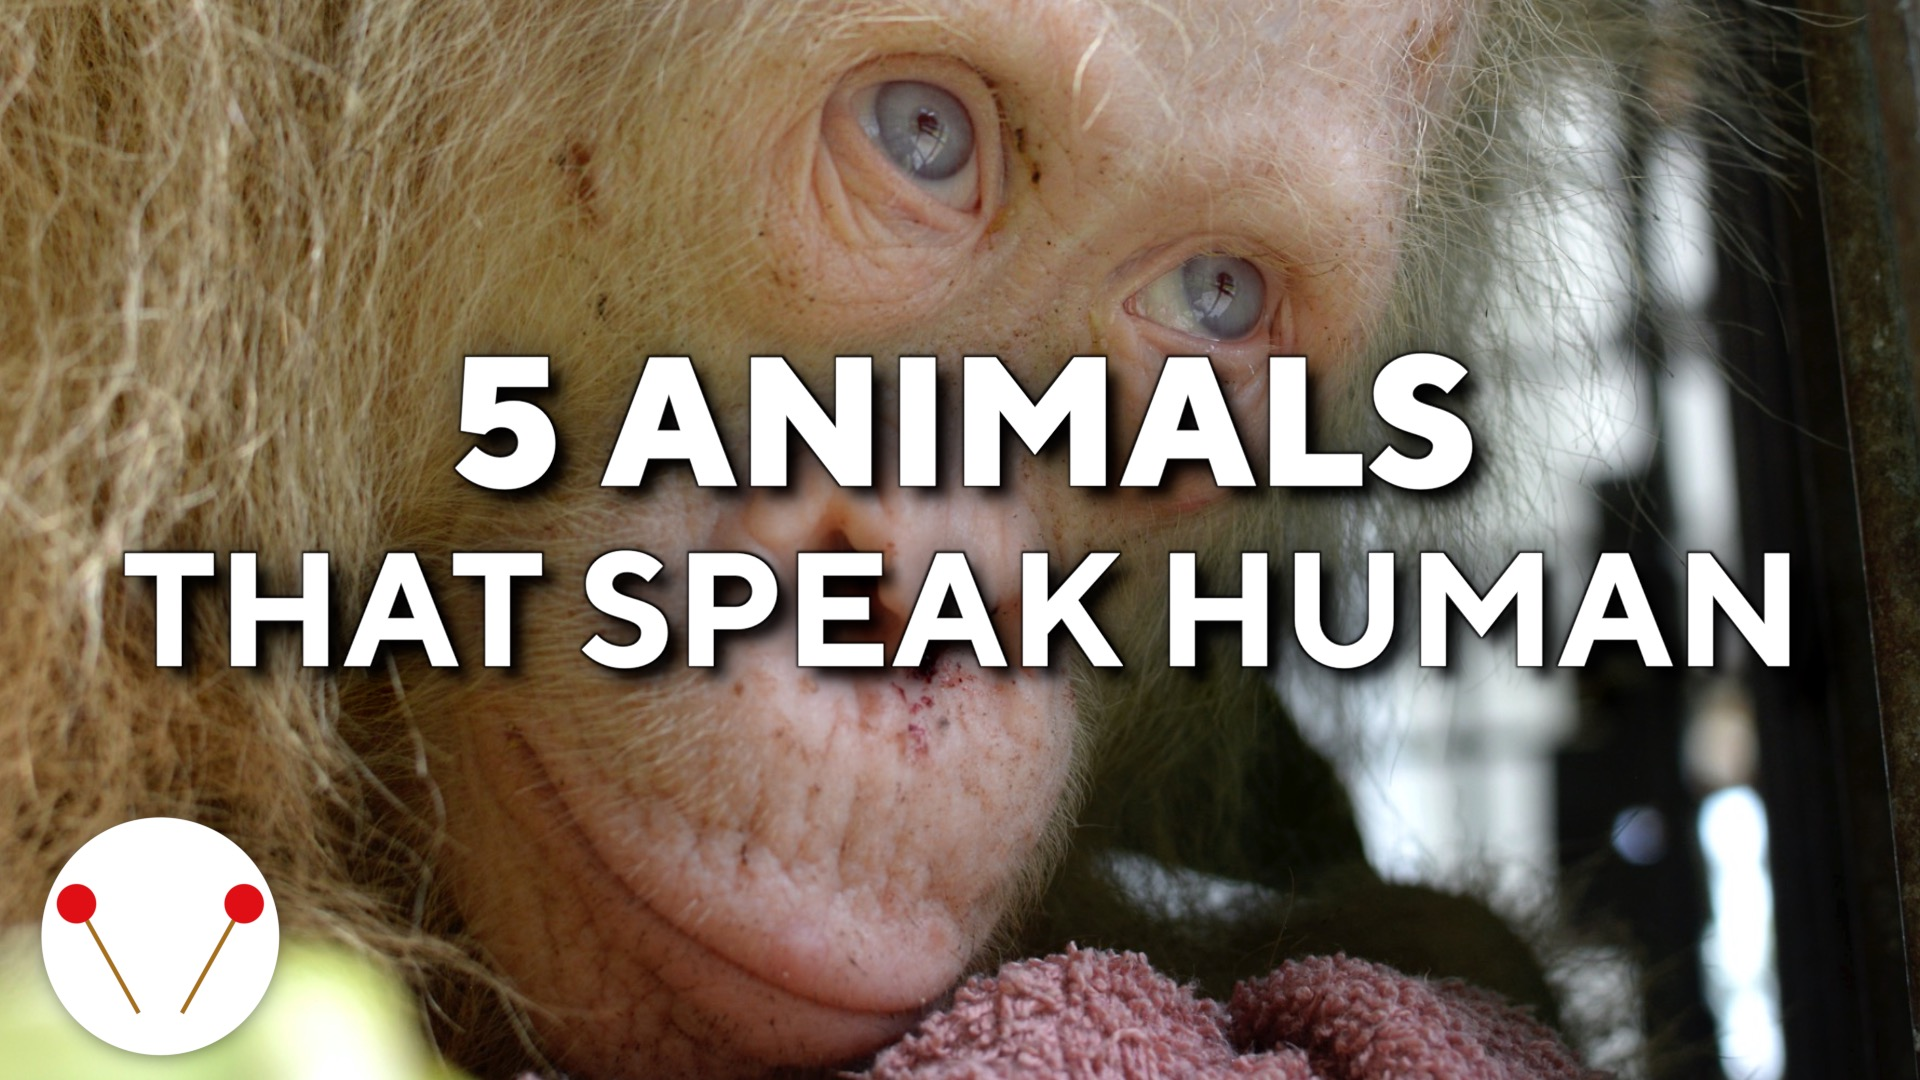 5 Animals That Speak Human